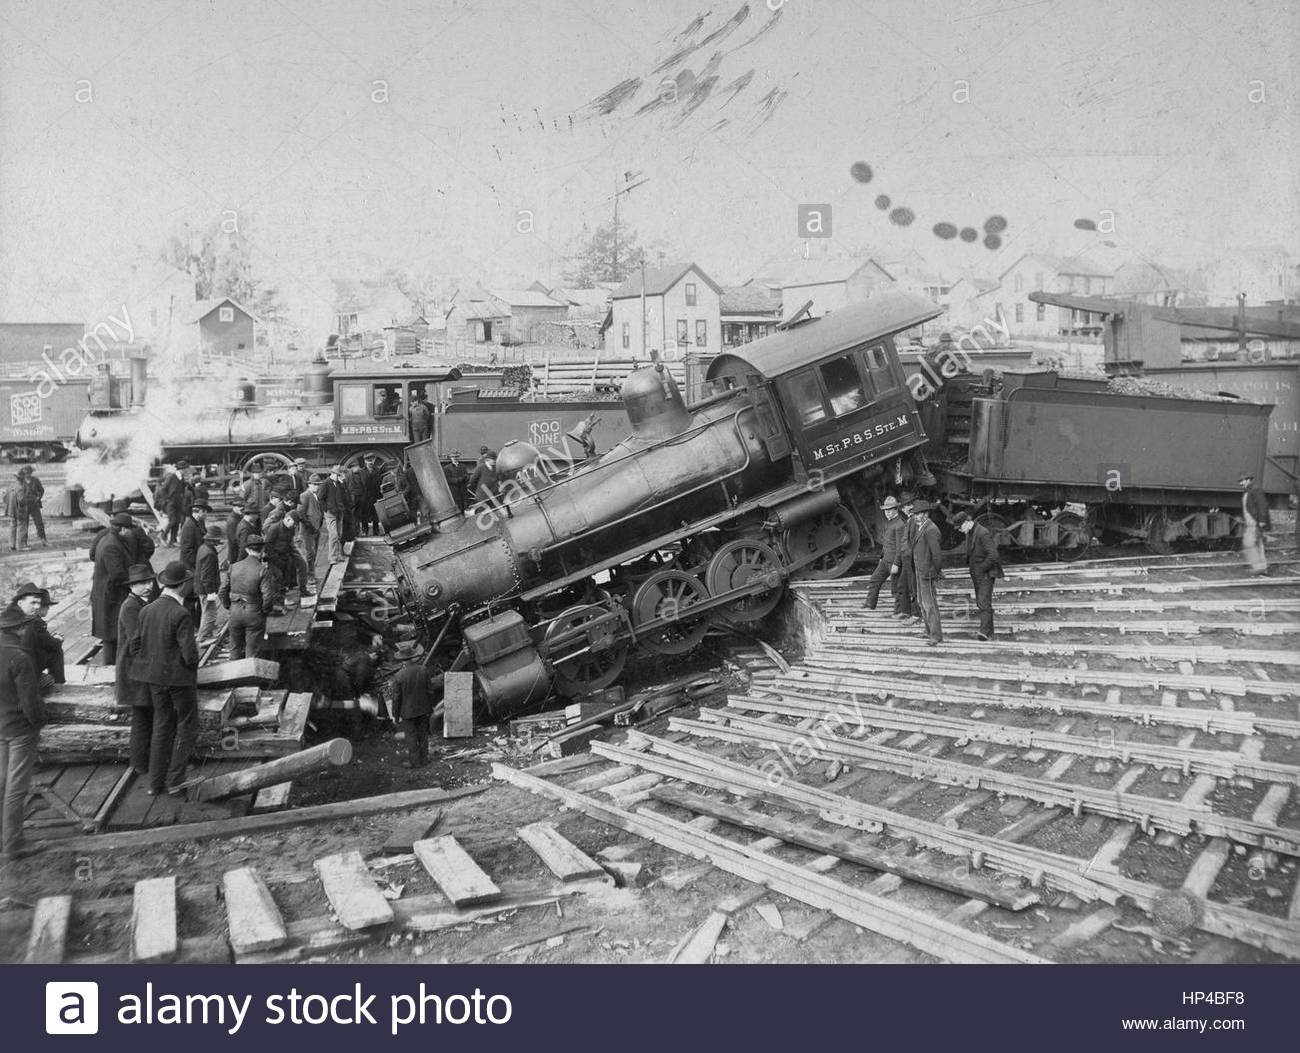 SOO Line steam train Engine 417 crashed into the Round house's turntable. The SOO Line was owned by the Canadian - Stock Image